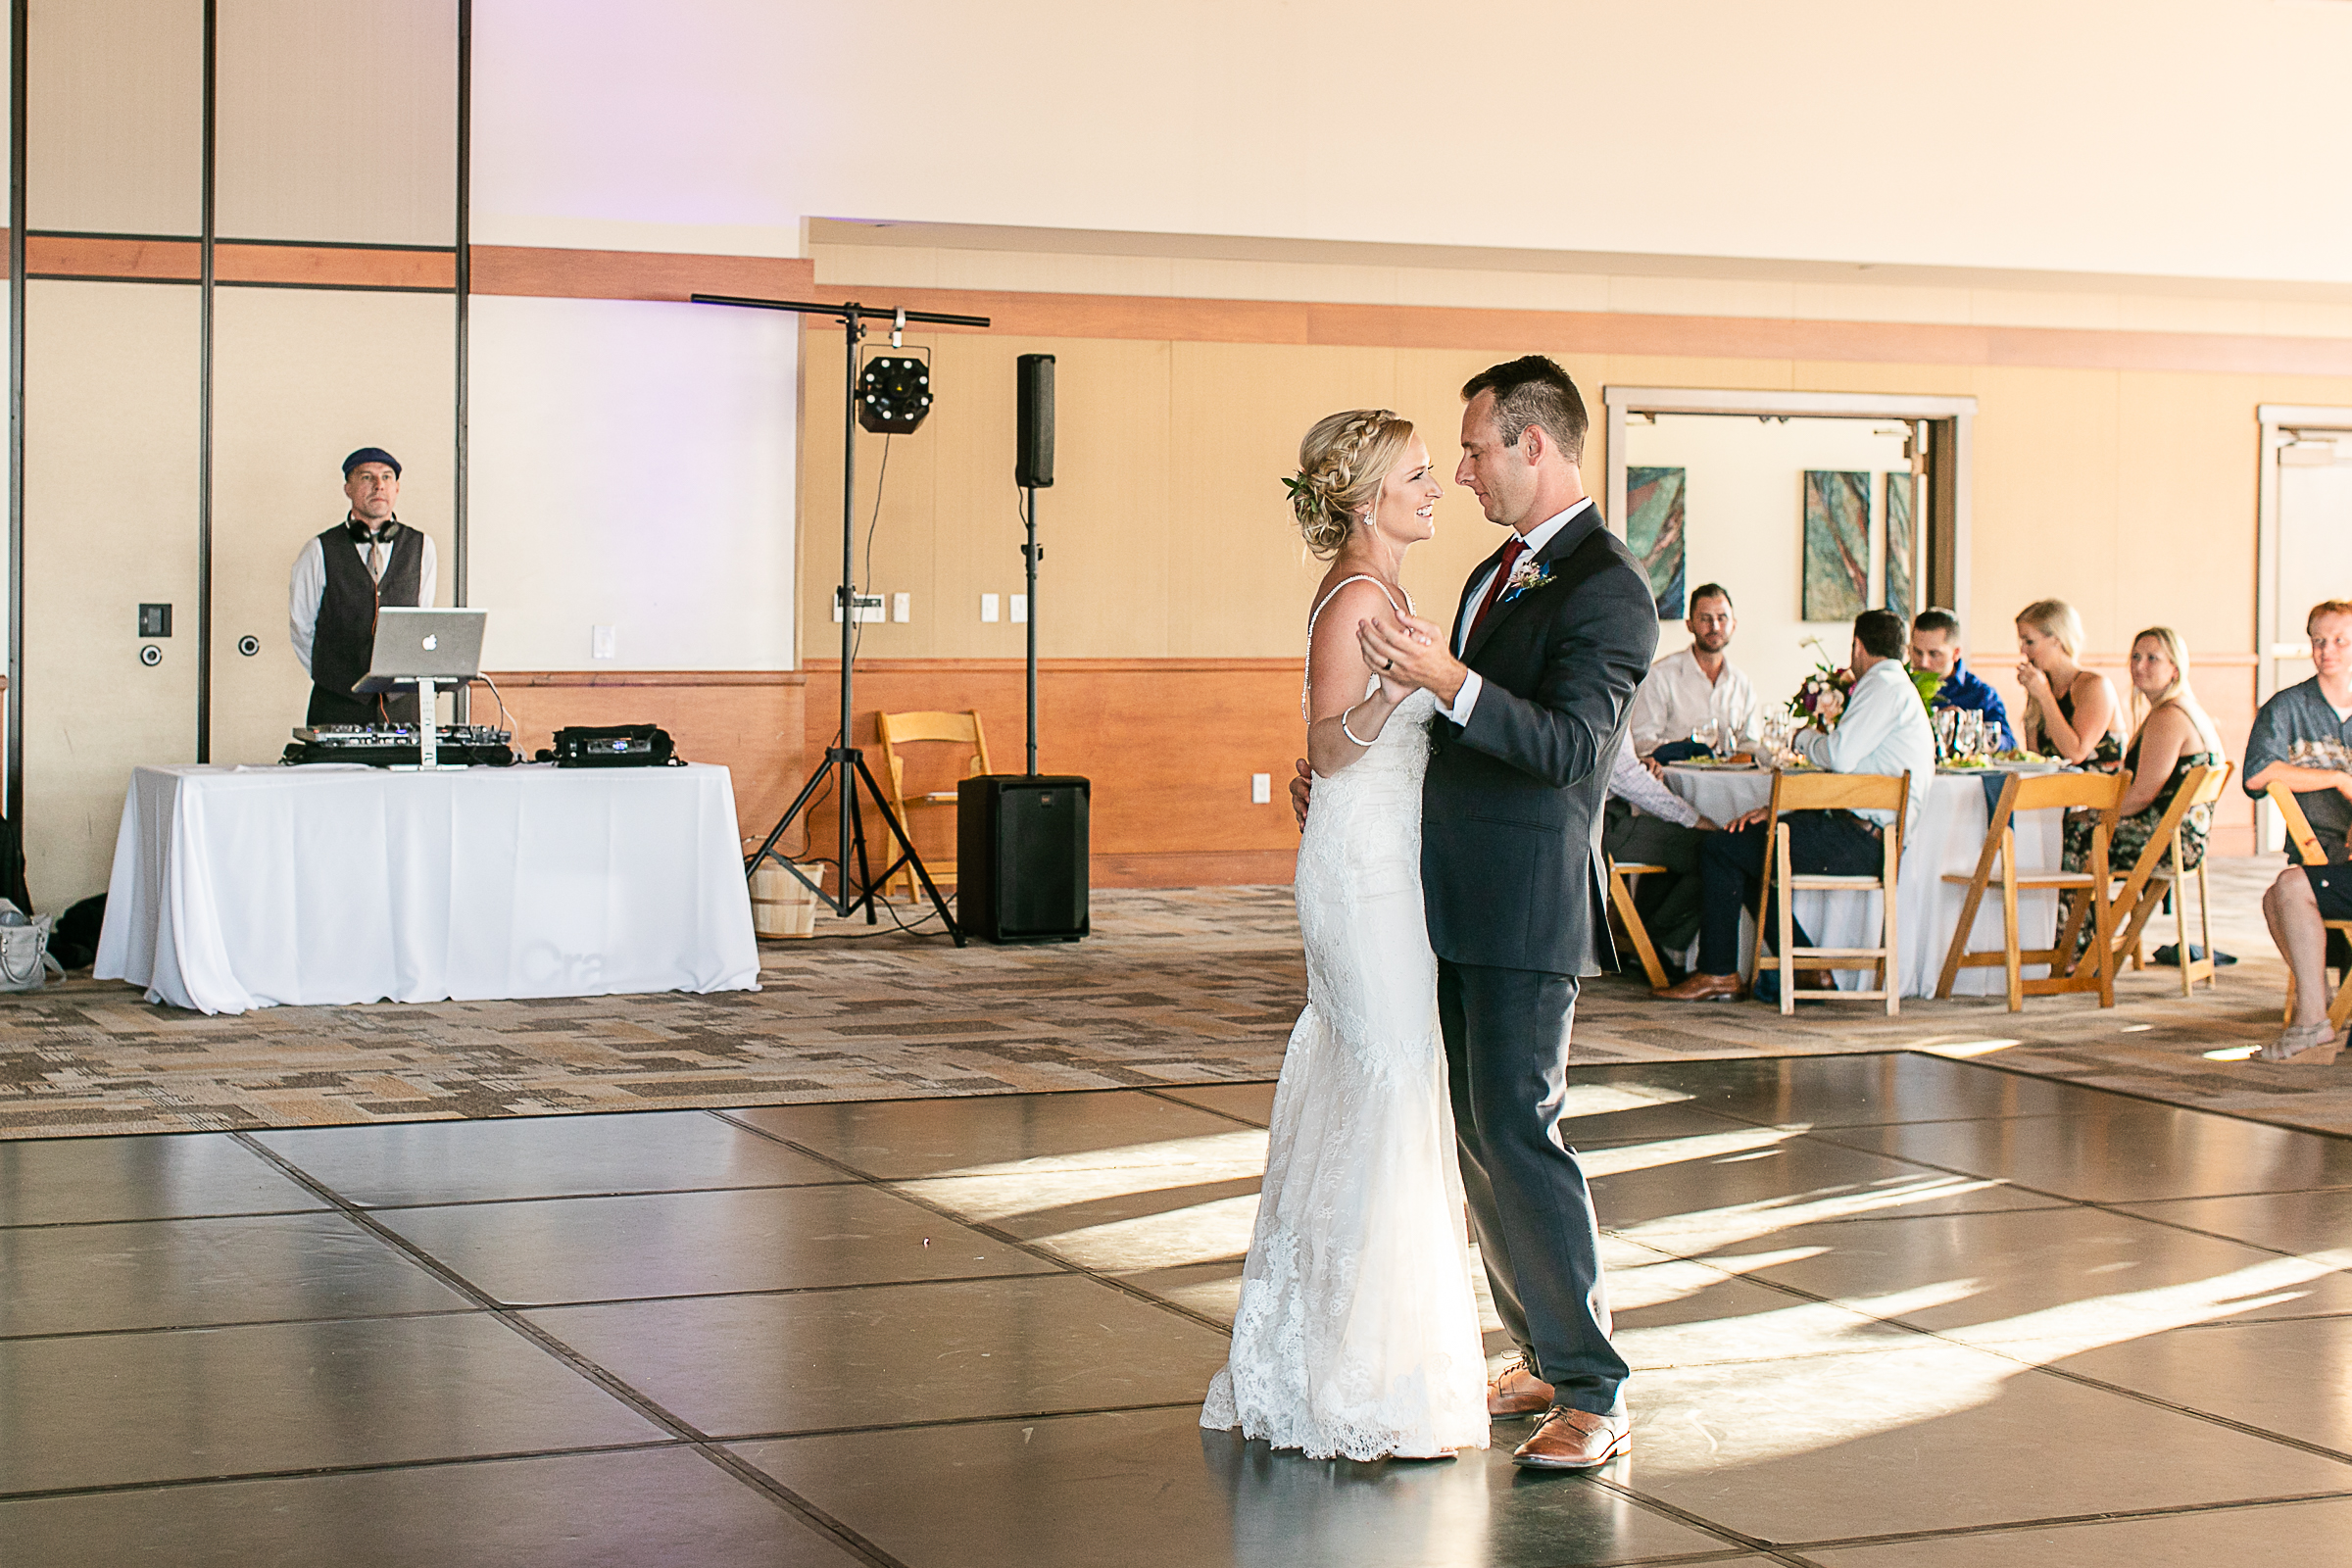 Heather and Chad's Wedding at Coronado community Center and Paradise Point-31.jpg